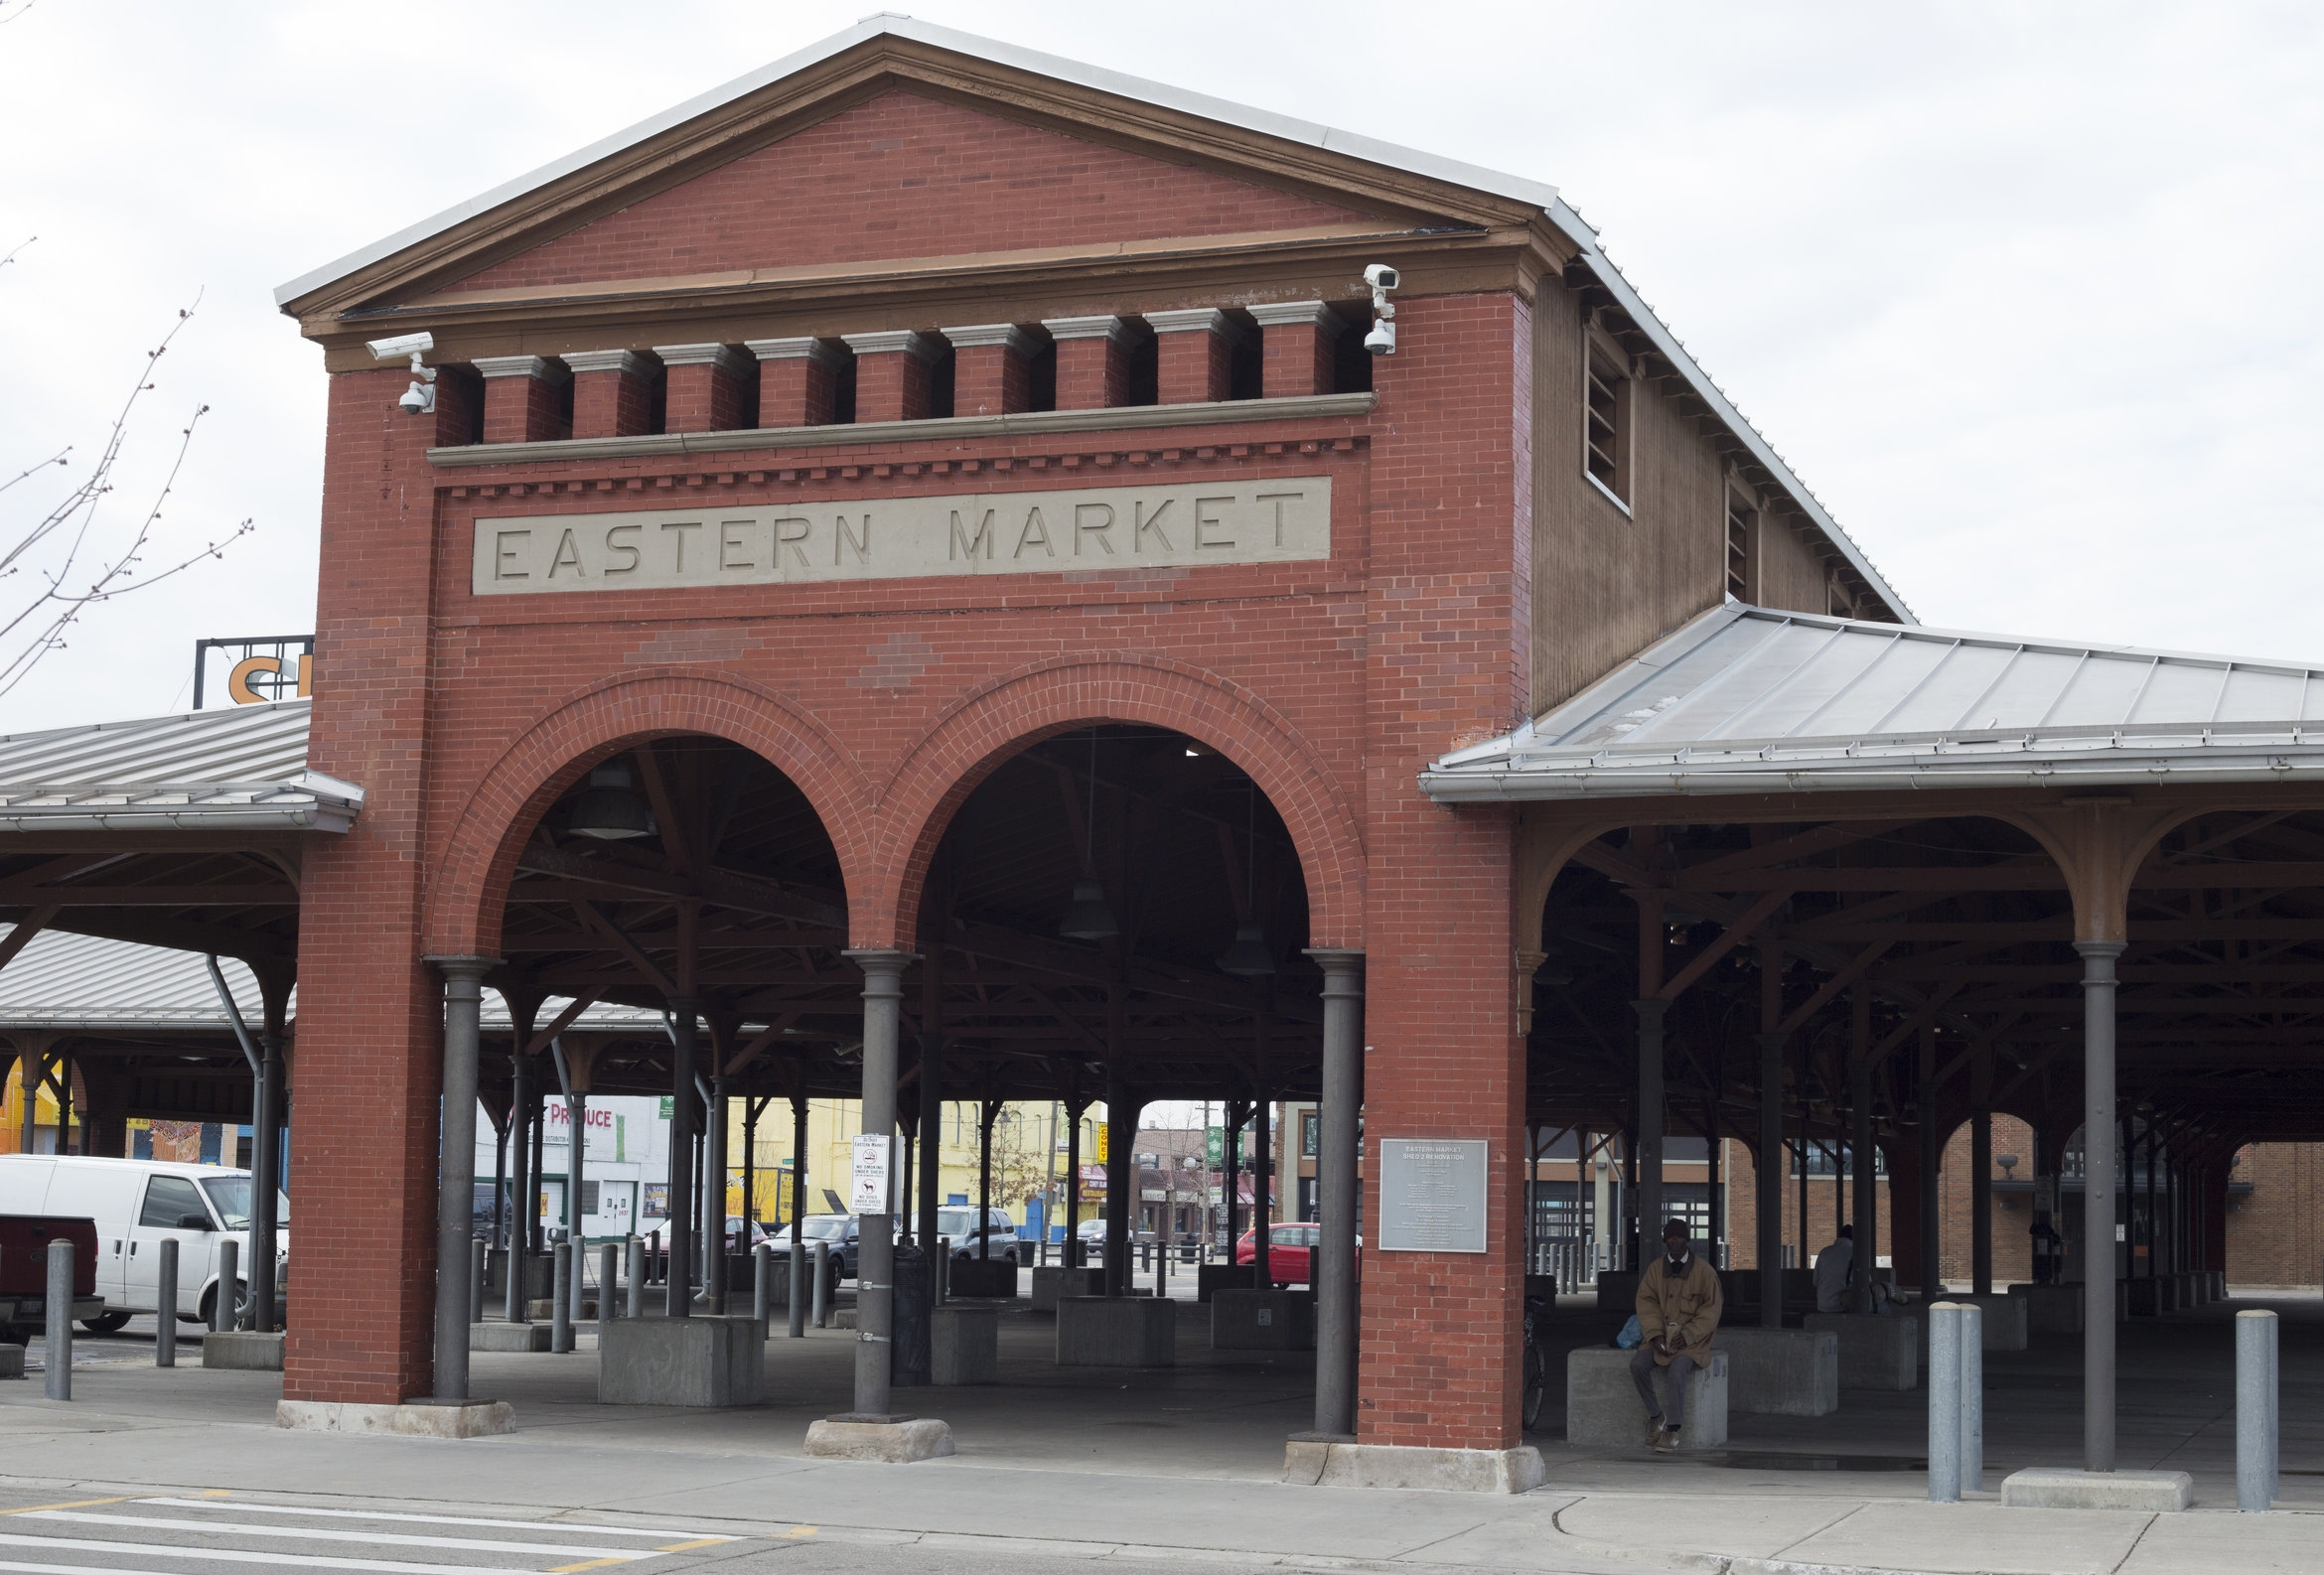 As a Detroit institution, Eastern Market began in the 1800s to feed hungry families. Today, that mission still guides the market's principles, but it is open to the public Saturdays year round, in addition to Tuesdays and Sundays during the summer and early fall, to experience local artisans and purveyors.